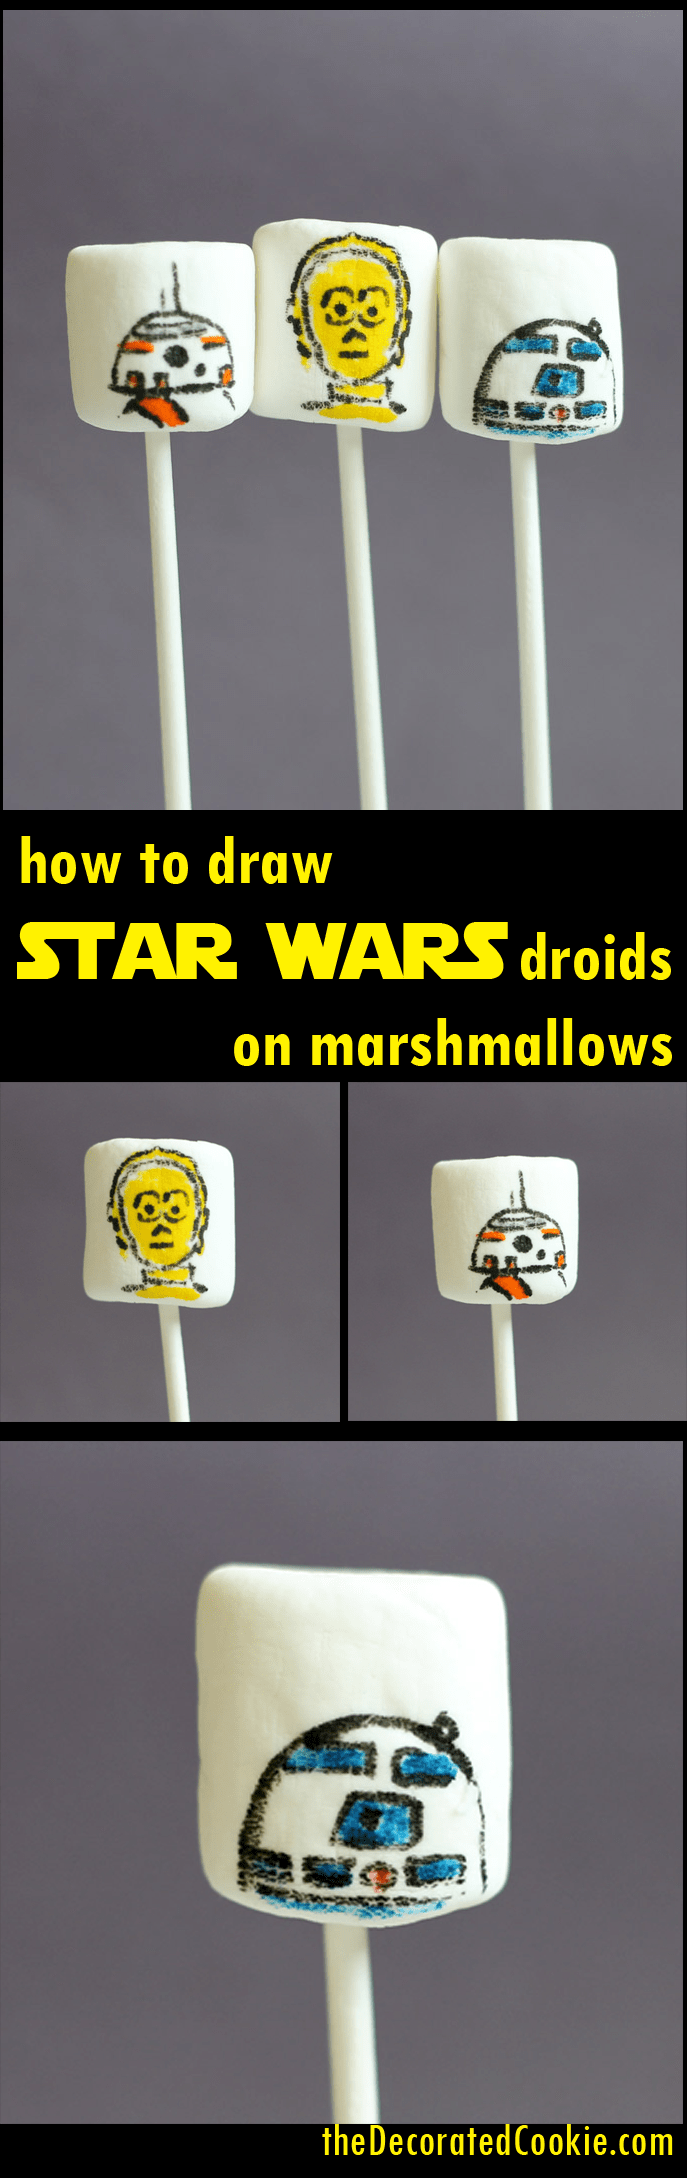 how to draw Star Wars droids on marshmallows